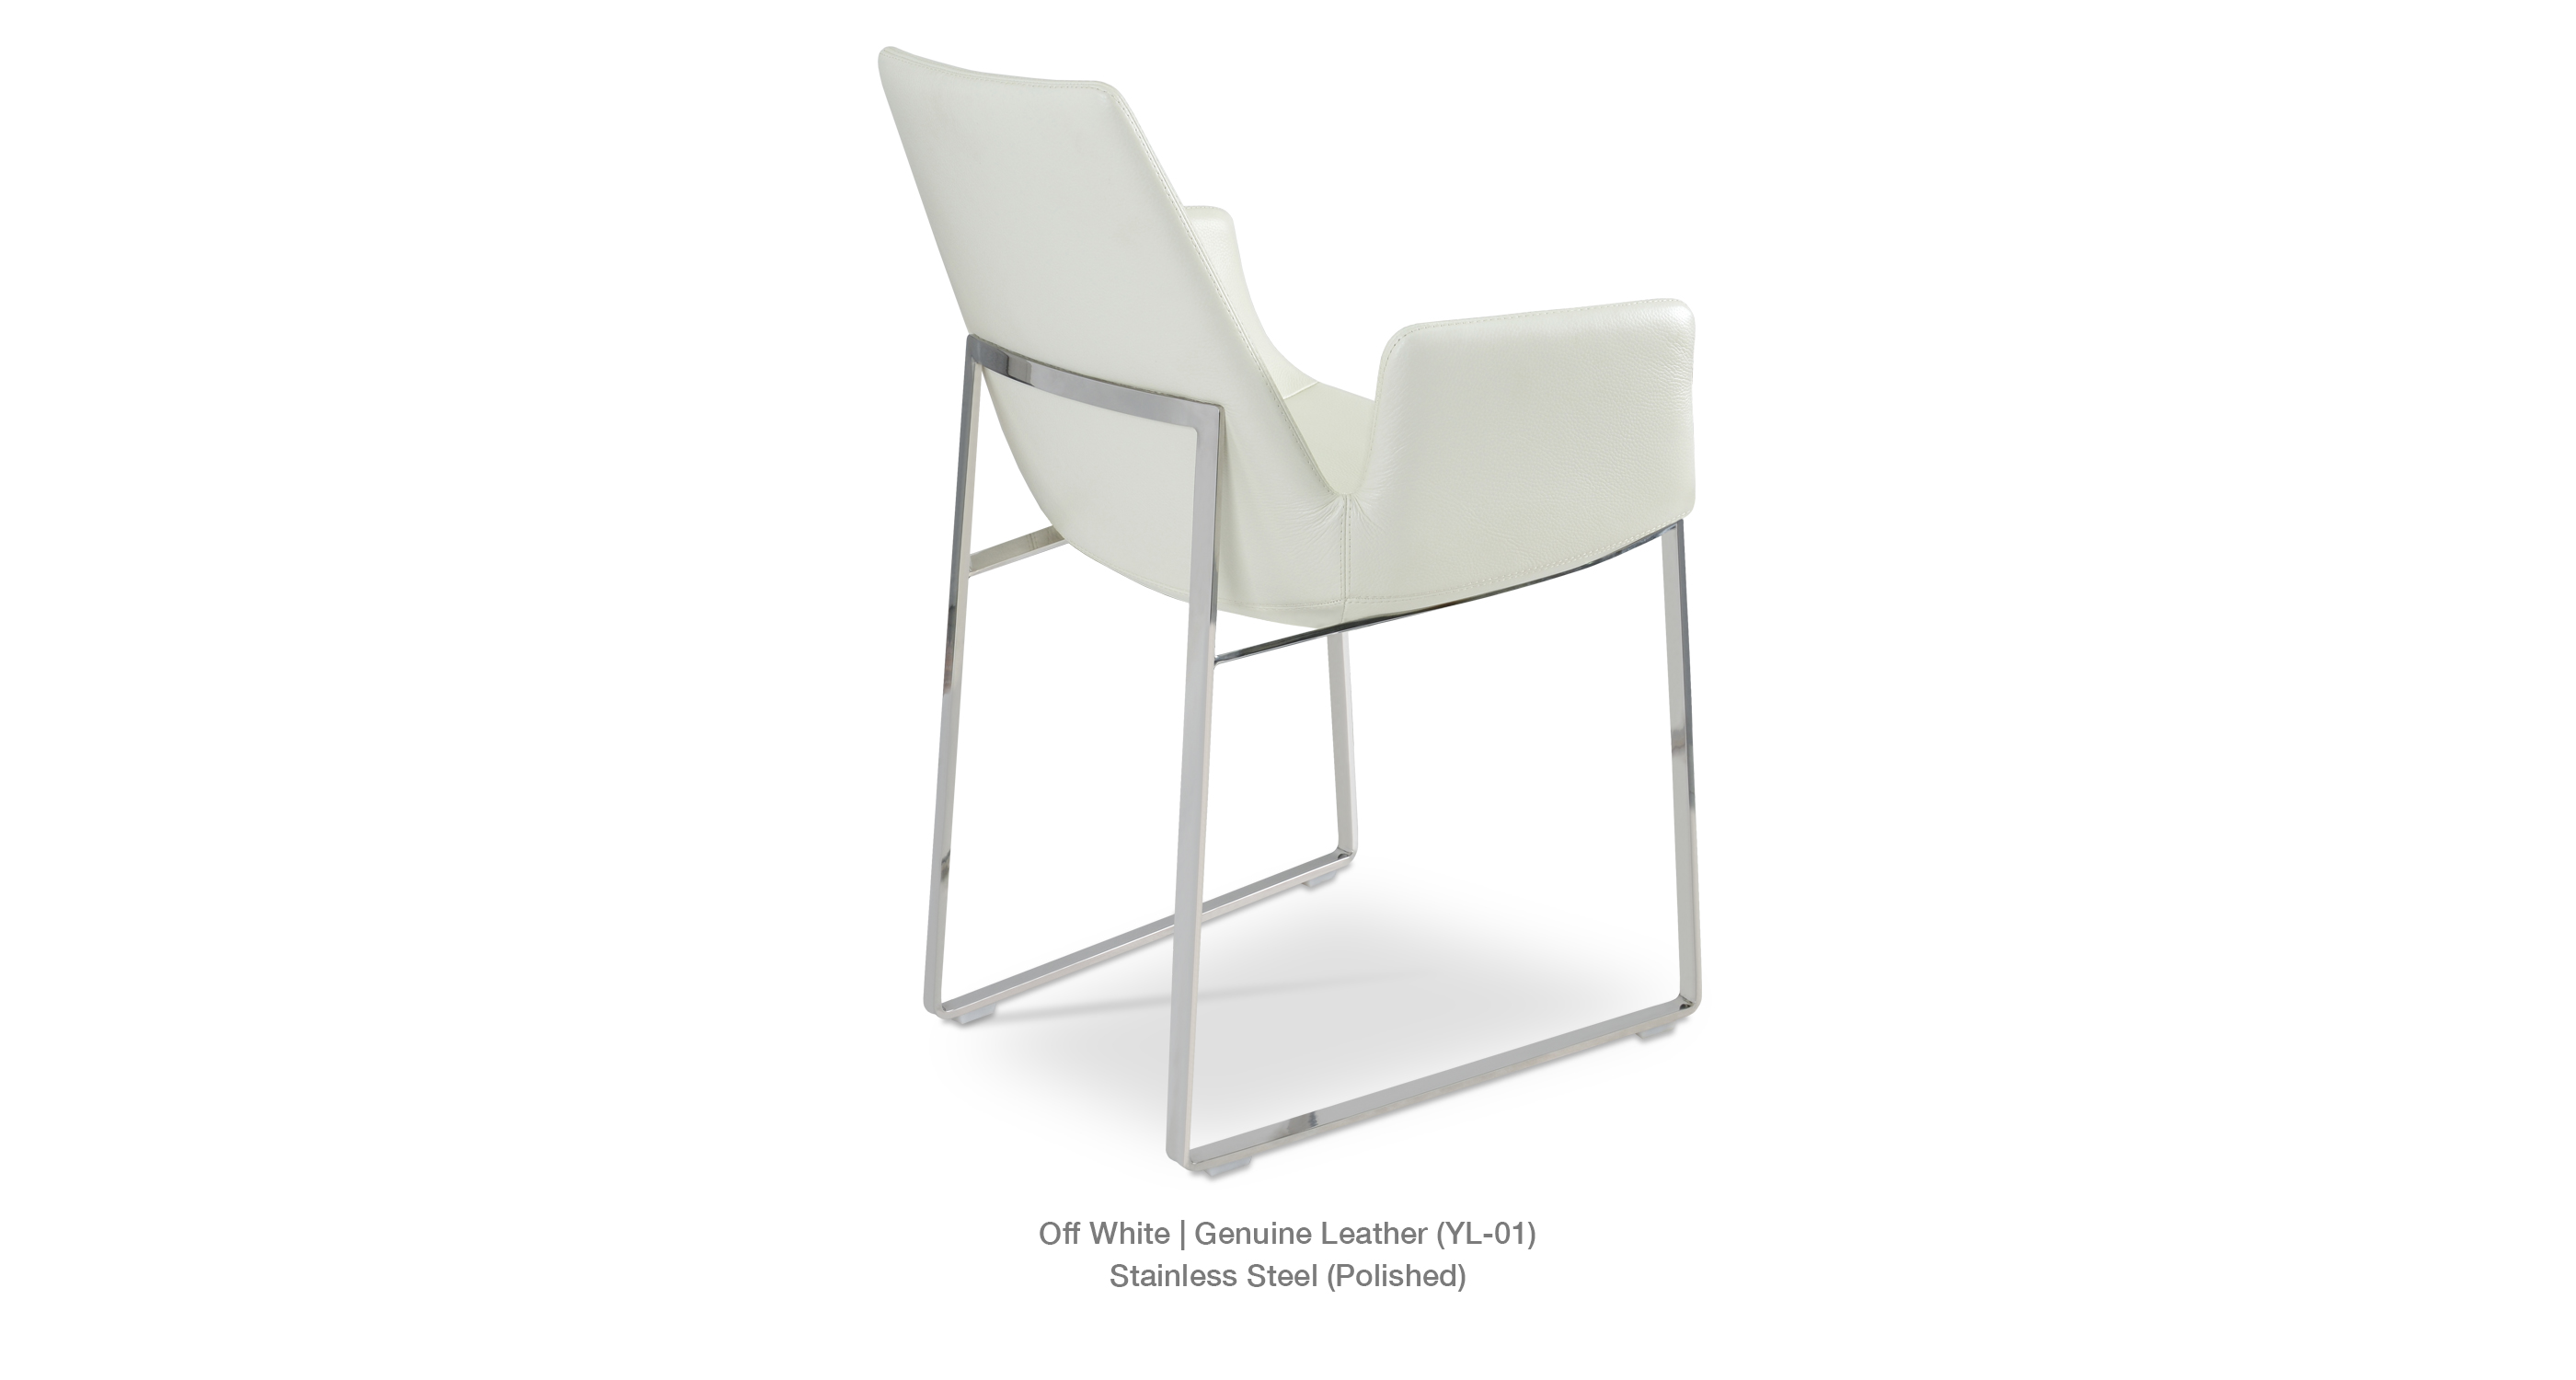 Eiffel Arm Sled Off White Leather